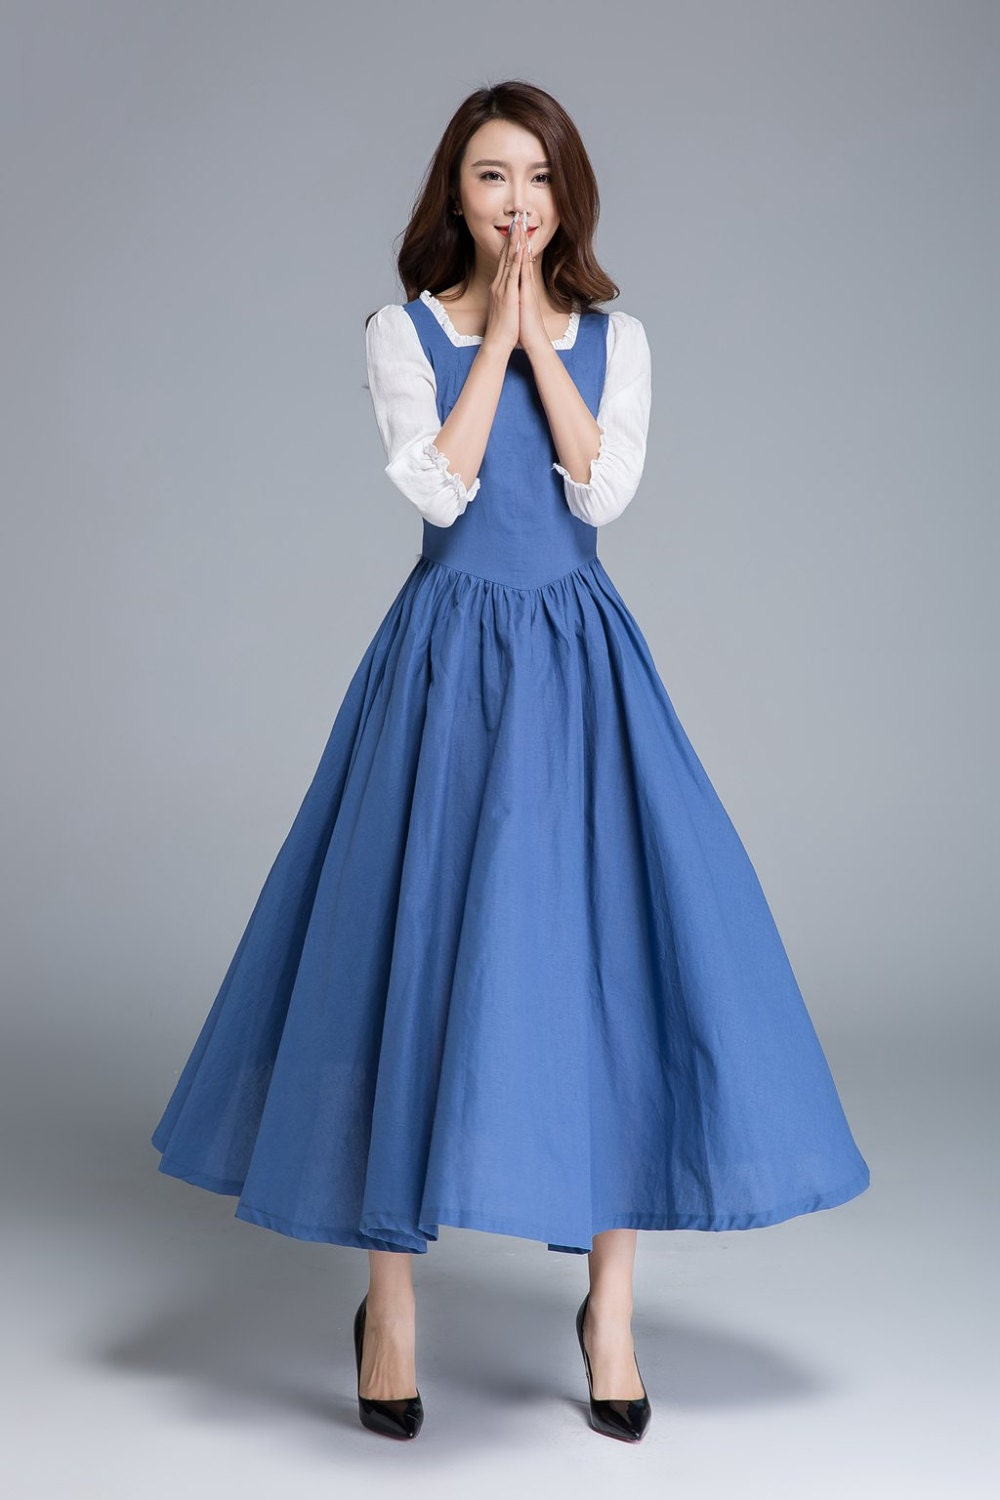 belle dress prom dress blue dress ruffle dress party